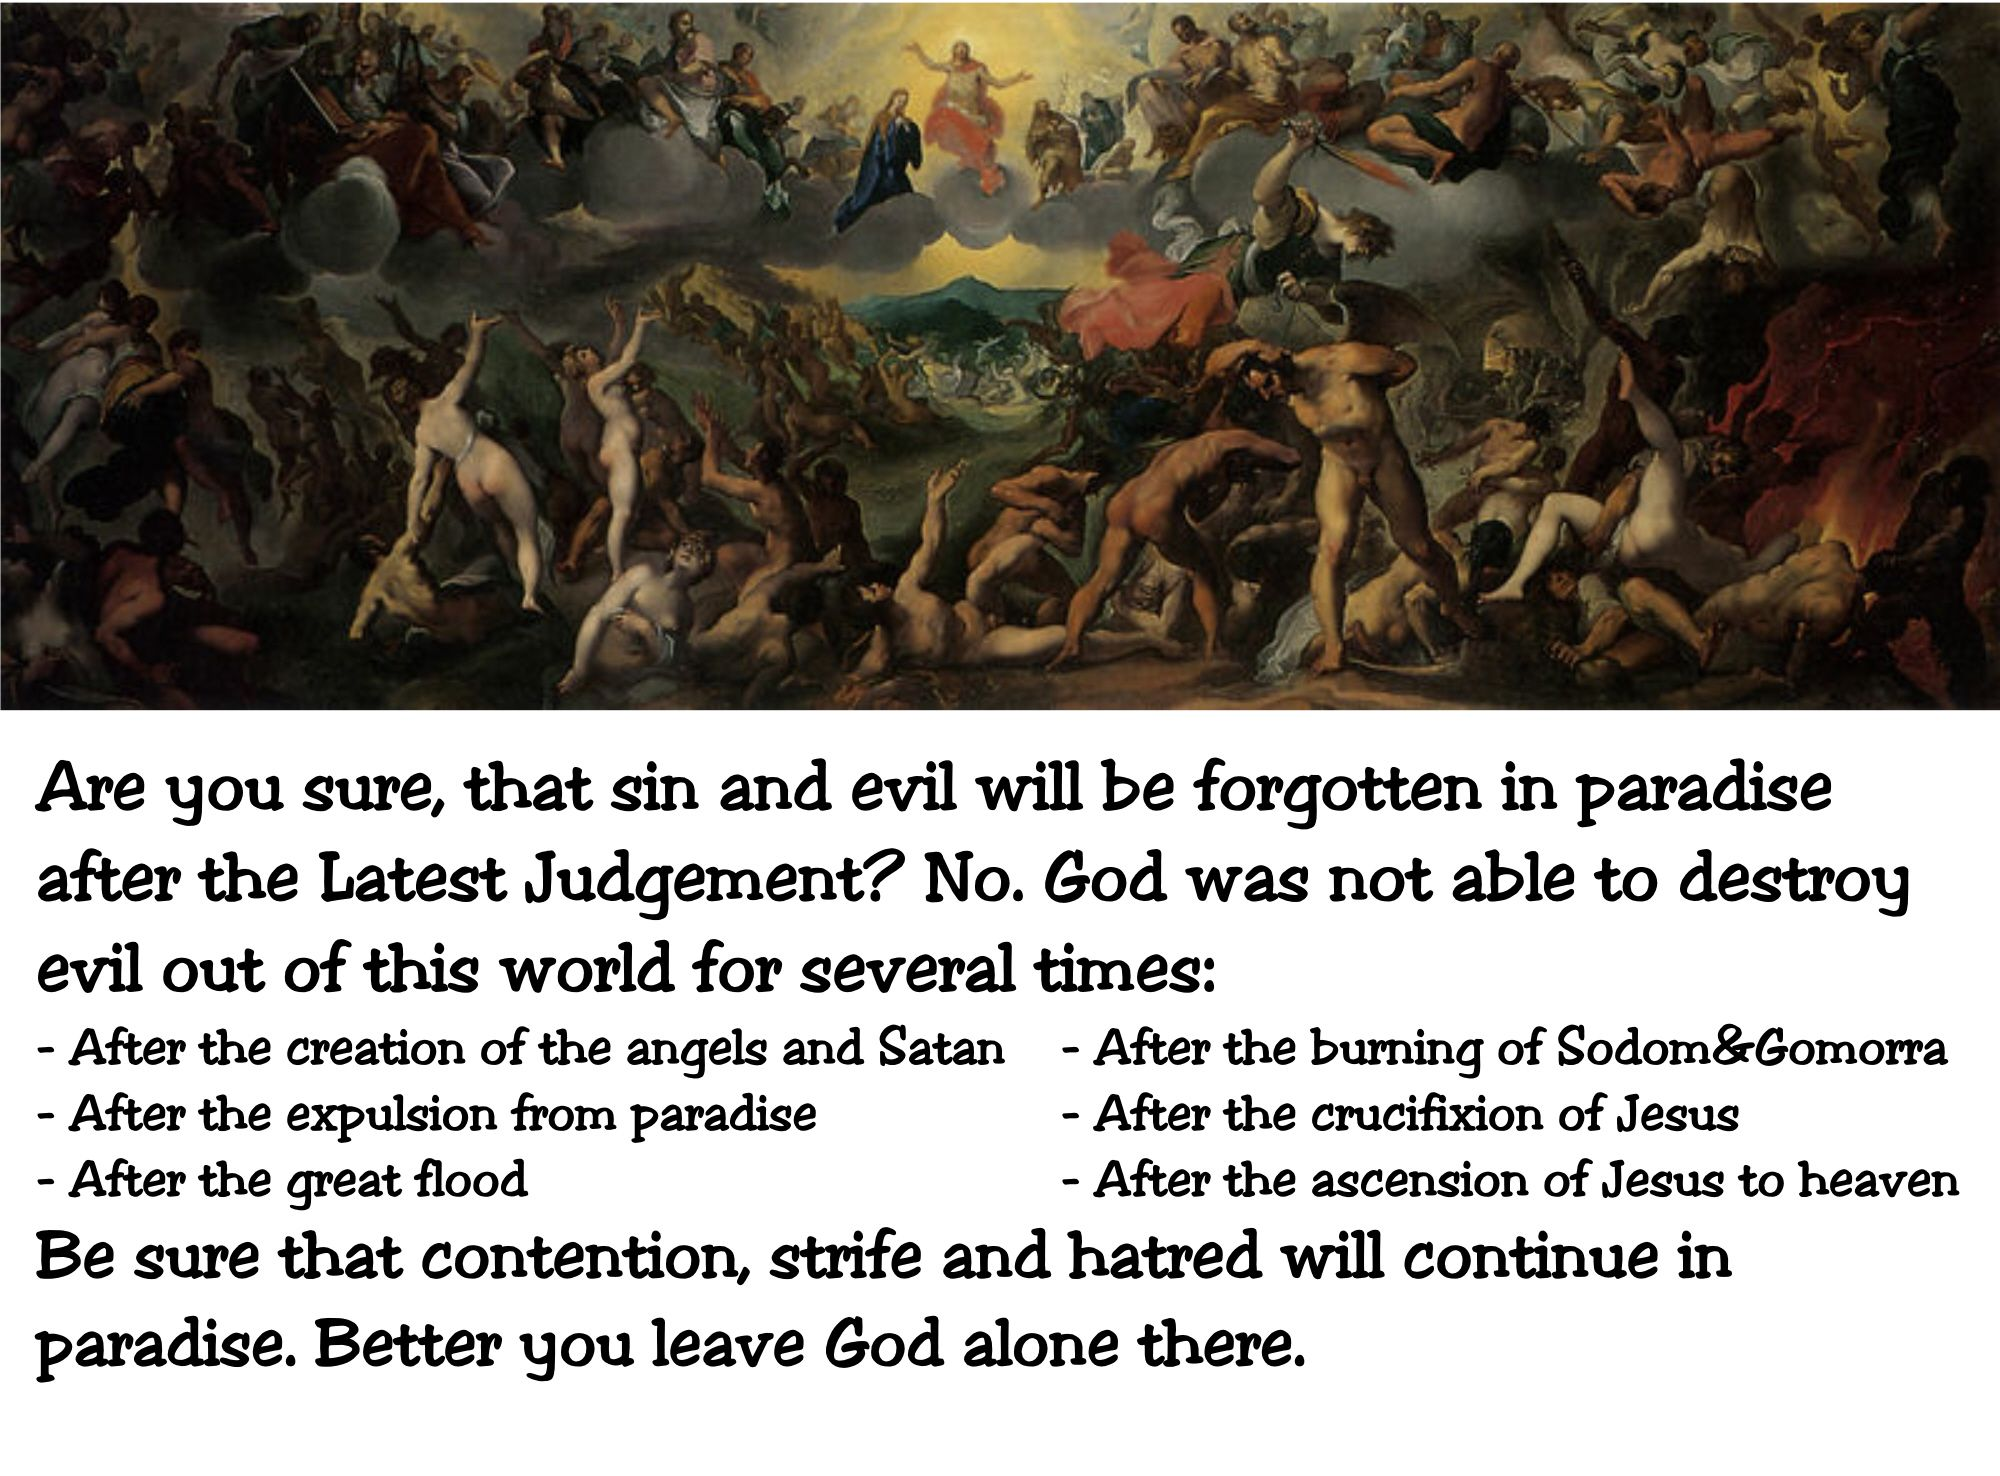 Sin and evil will continue in paradise - #God #Jesus #Christ #Bible #Religion #Atheist #Sin #Forgive #Happy #Life #Love